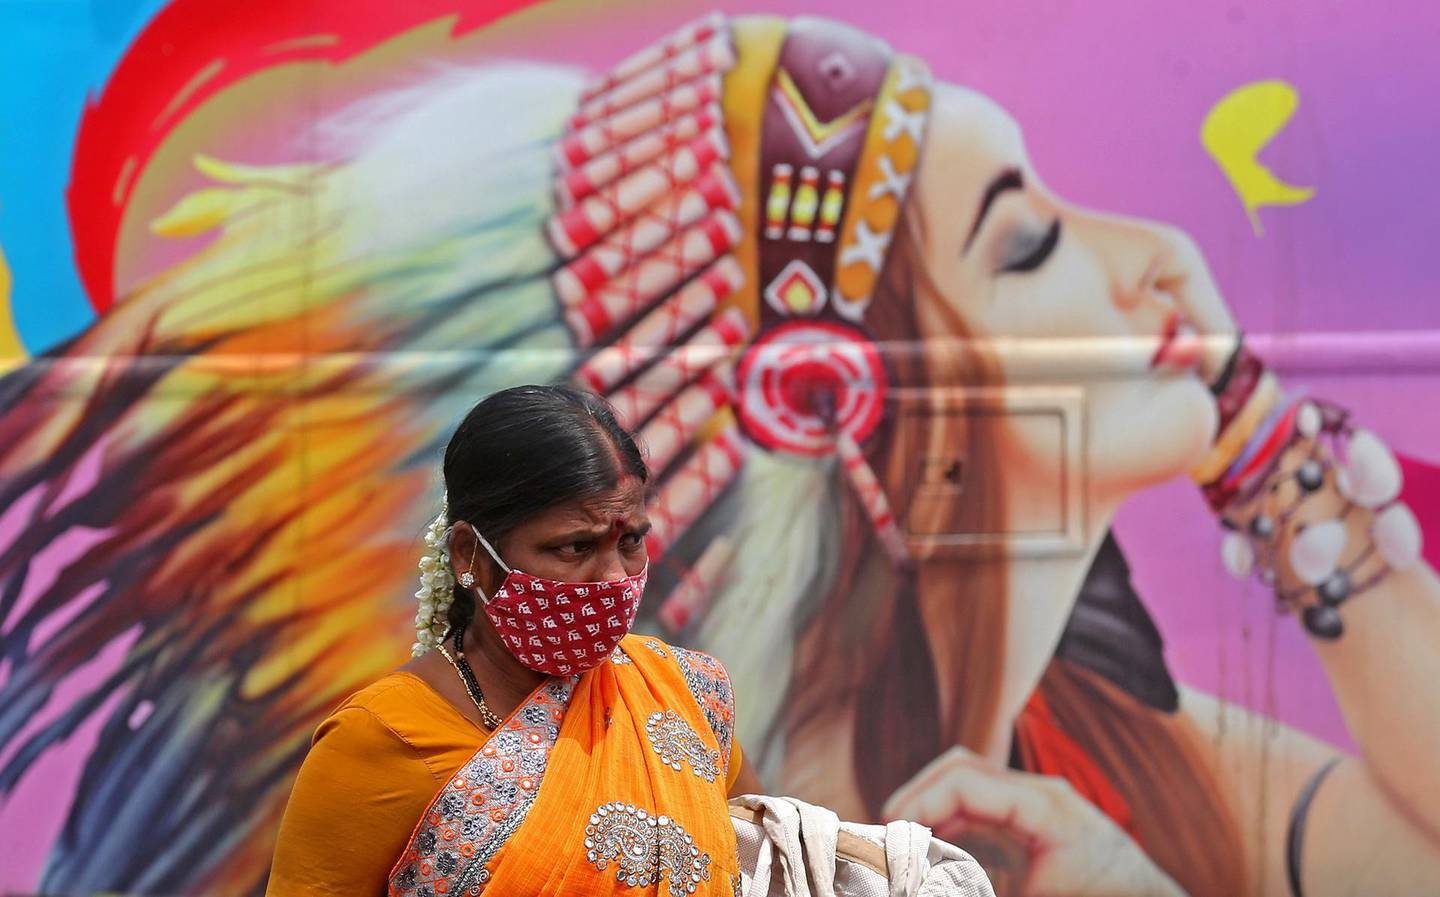 epa09121992 A woman wears a mask in Bangalore, India, 08 April 2021. India recorded massive surge of 126,315 Covid-19 cases is the highest single-day spike in COVID-19 infections. India is seeing a second wave of the virus which has led several states including Maharashtra and the capital, New Delhi, to impose new restrictions.  EPA/JAGADEESH NV